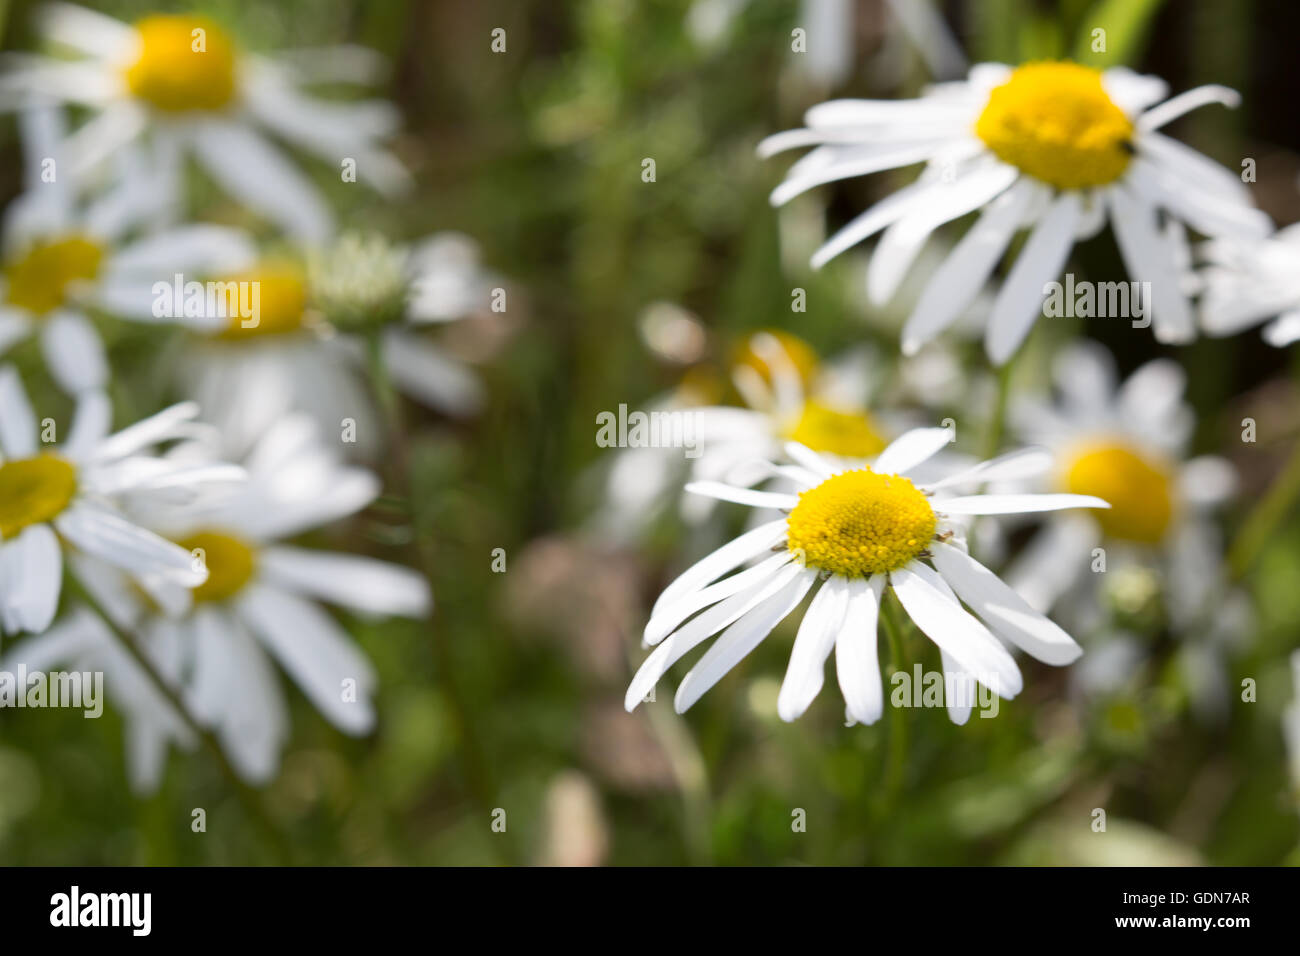 England Wild Flower Daisy Bellis Stock Photos England Wild Flower